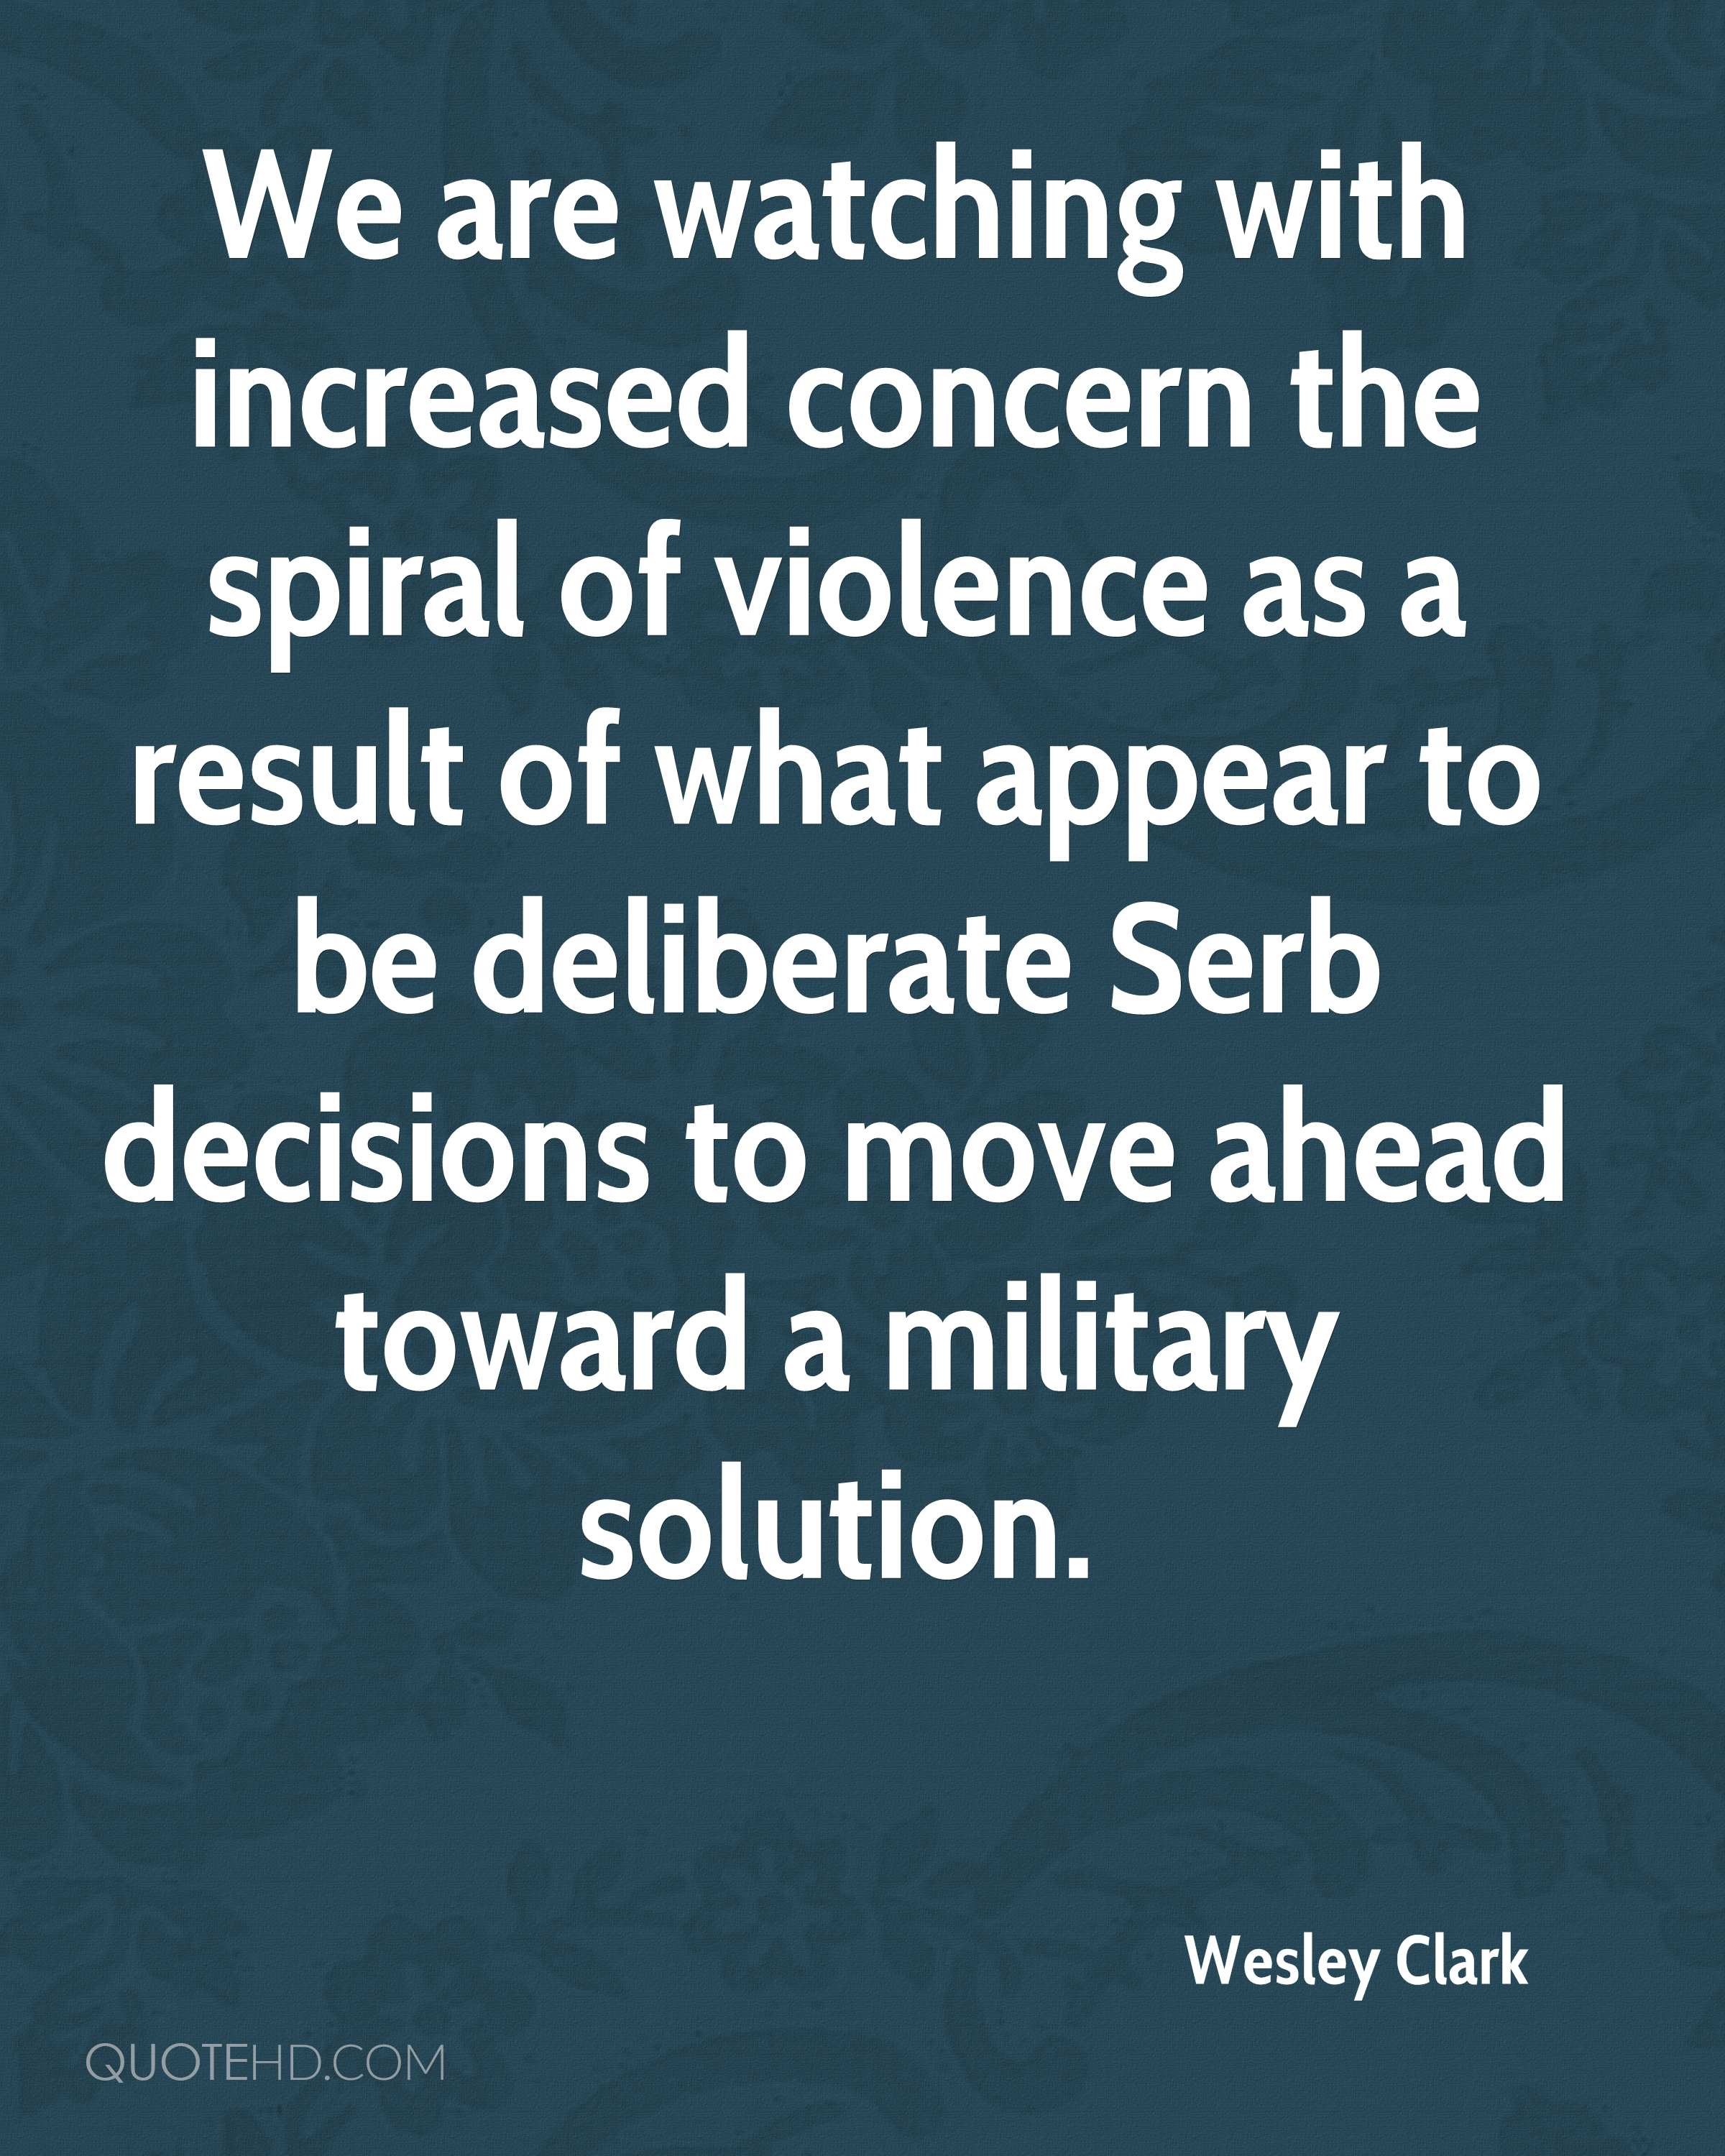 We are watching with increased concern the spiral of violence as a result of what appear to be deliberate Serb decisions to move ahead toward a military solution.